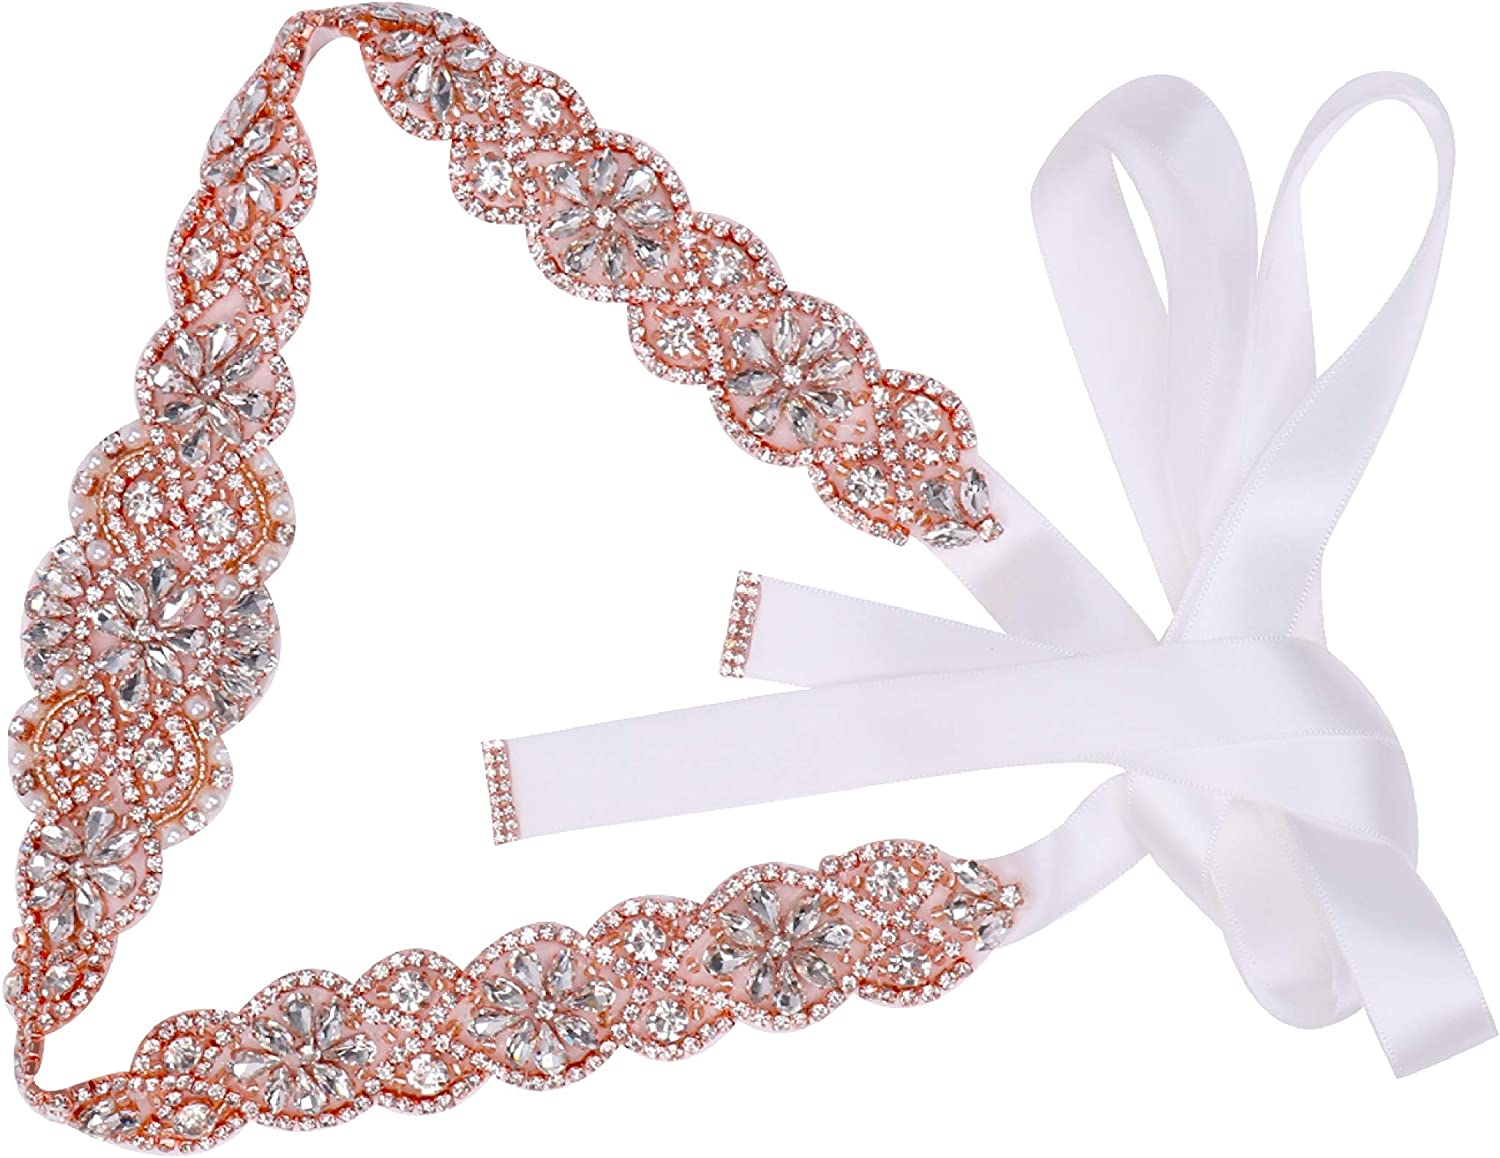 Tendaisy Women's Clear Crystal Rhinestone Sash Wedding Belt for Bridal Gowns(Rose-White) at  Women's Clothing store